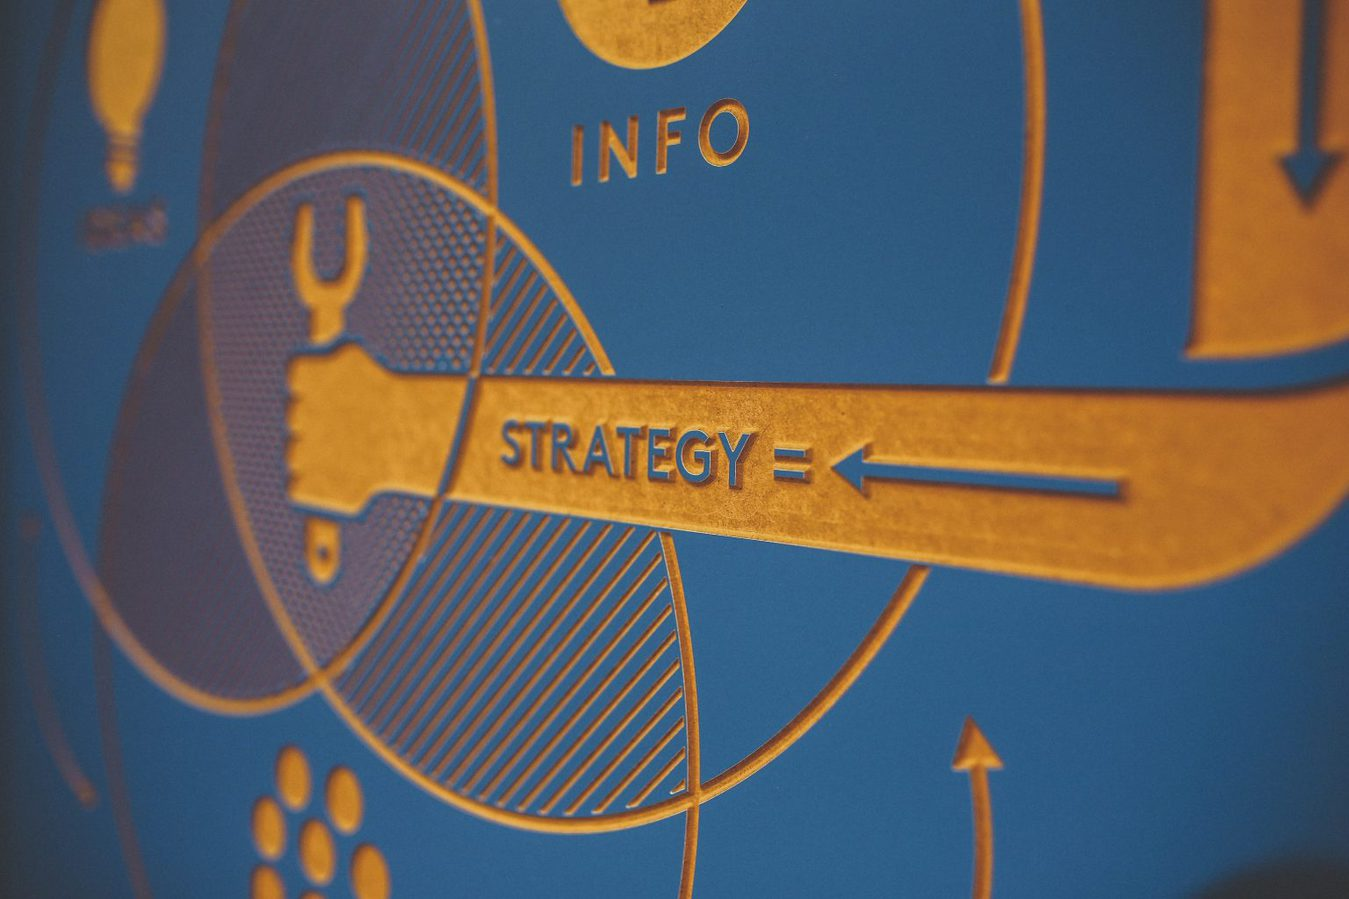 Close up of a venn diagram pattern saying 'info' and 'strategy'